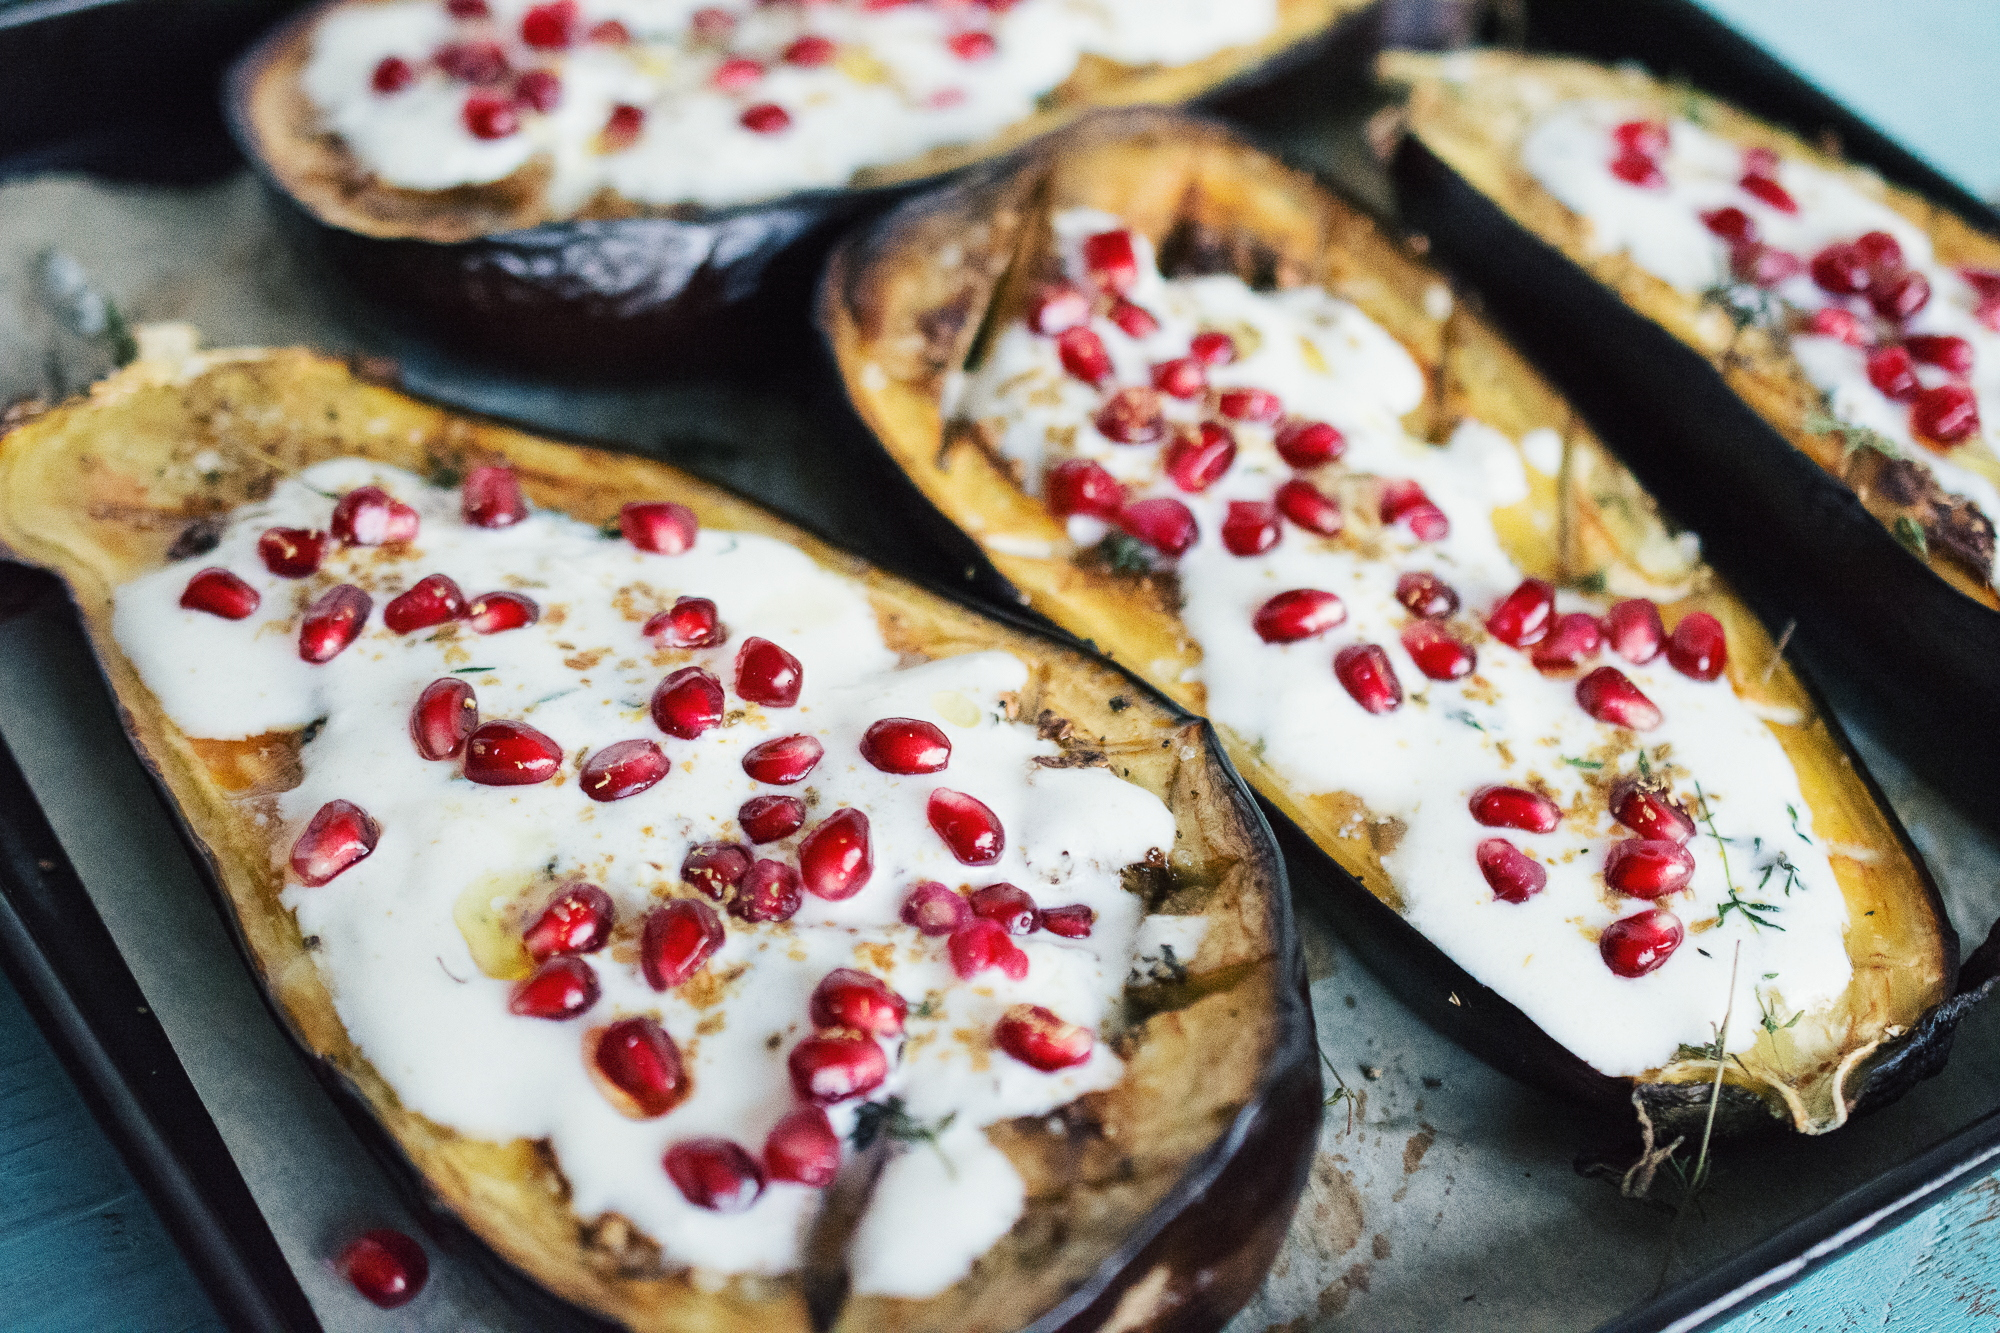 Ottolenghi's Eggplant with Buttermilk Sauce - The Food Gays